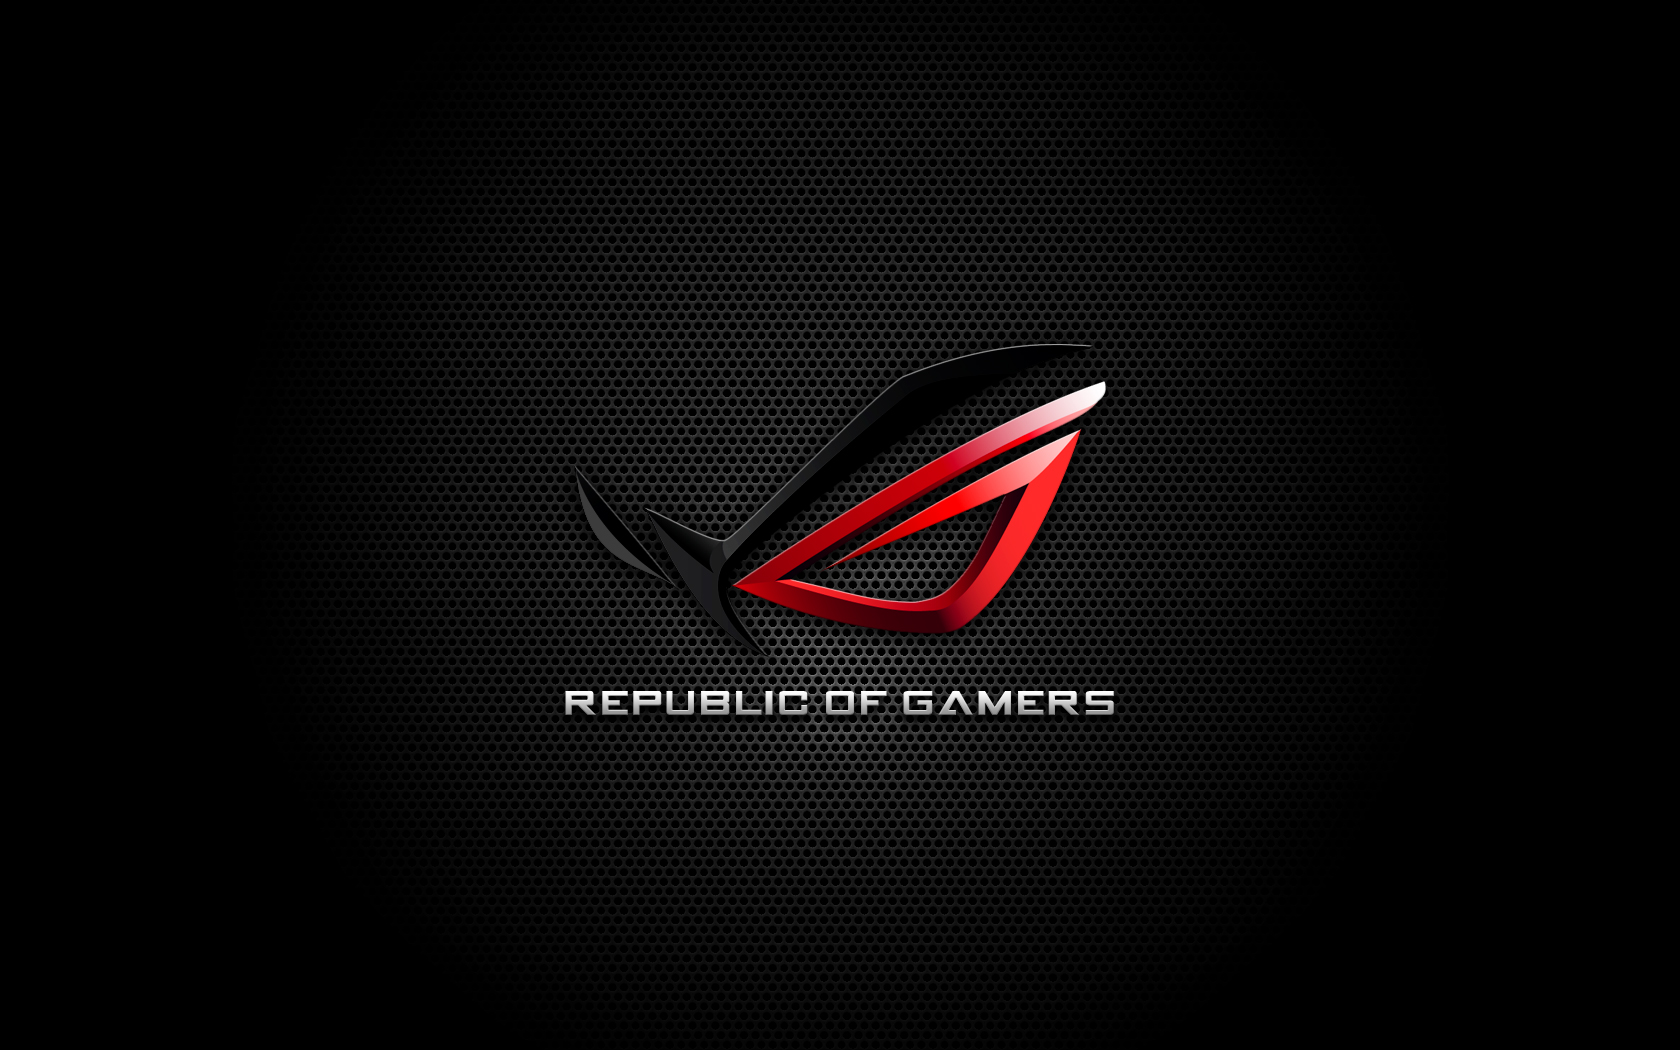 Watch furthermore Black Red Wallpapers moreover 5 Good Reasons Dell Alienware Is More Expensive Than ASUS Republic Of Gamers likewise Asus Gaming Wallpaper Hd likewise Galerie Images. on republic of gamers asus rog logo laptop wallpaper